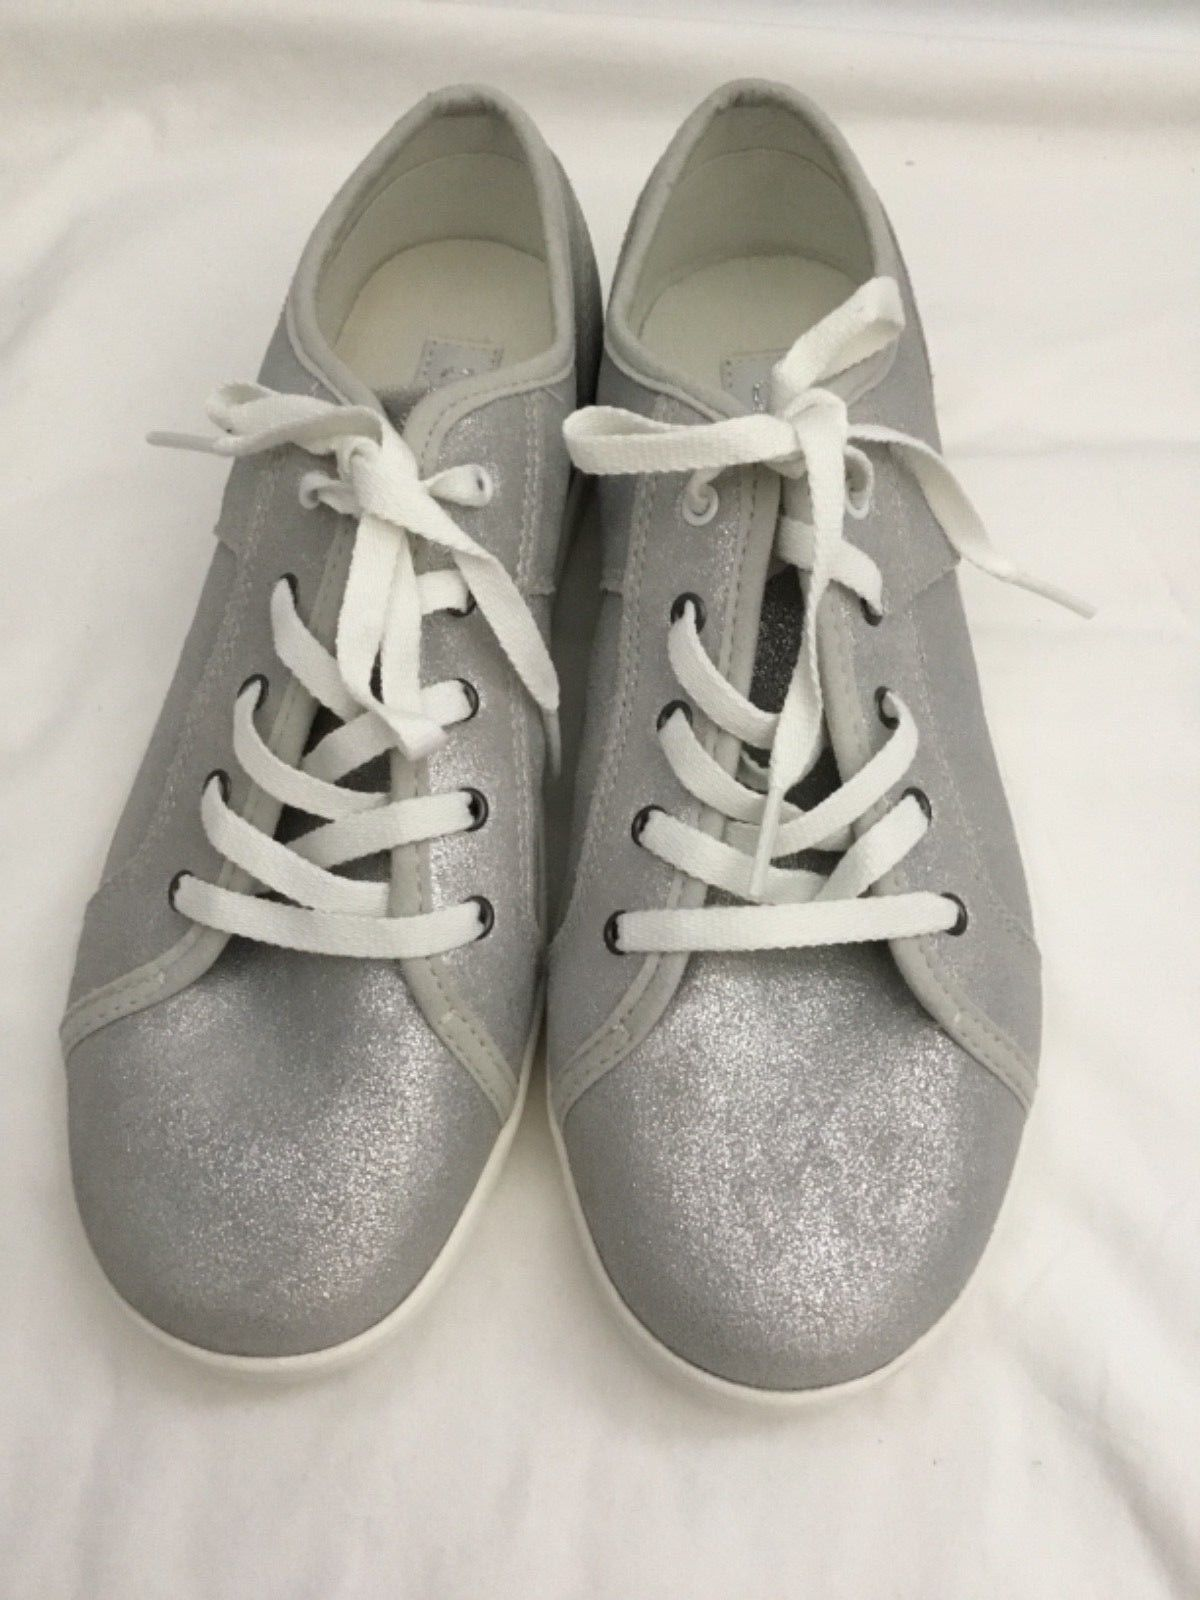 e9b0a61ee26 Ugg Women's Silver Metallic Sneaker Size 6 and 50 similar items